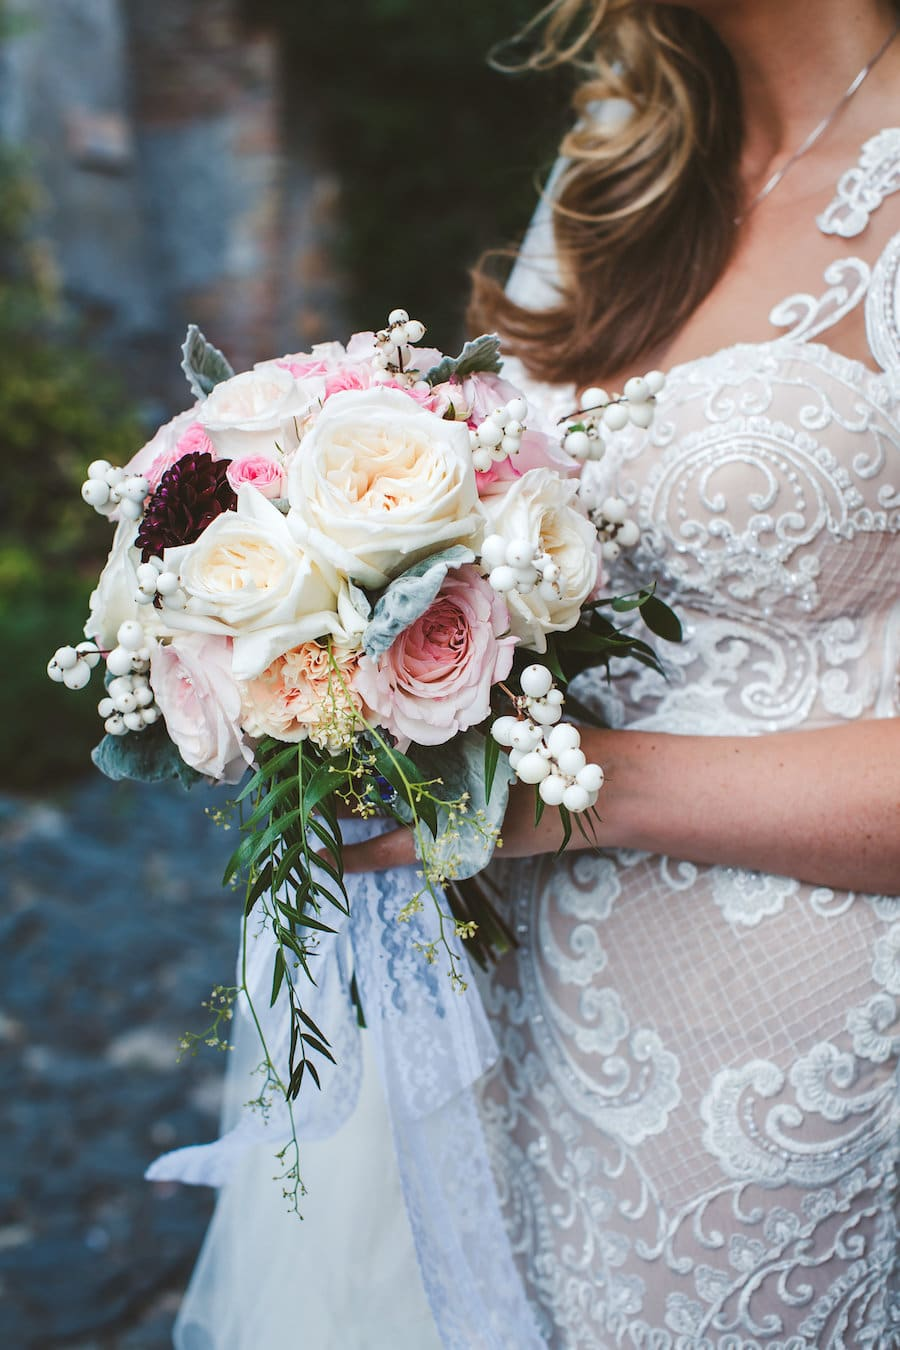 Naama and Anat, Naama and Anat Haute Couture, couture wedding gown, wedding dress, Italian Countryside Wedding, Diva Gown, Peggy Maison Pestea, bridal bouquet